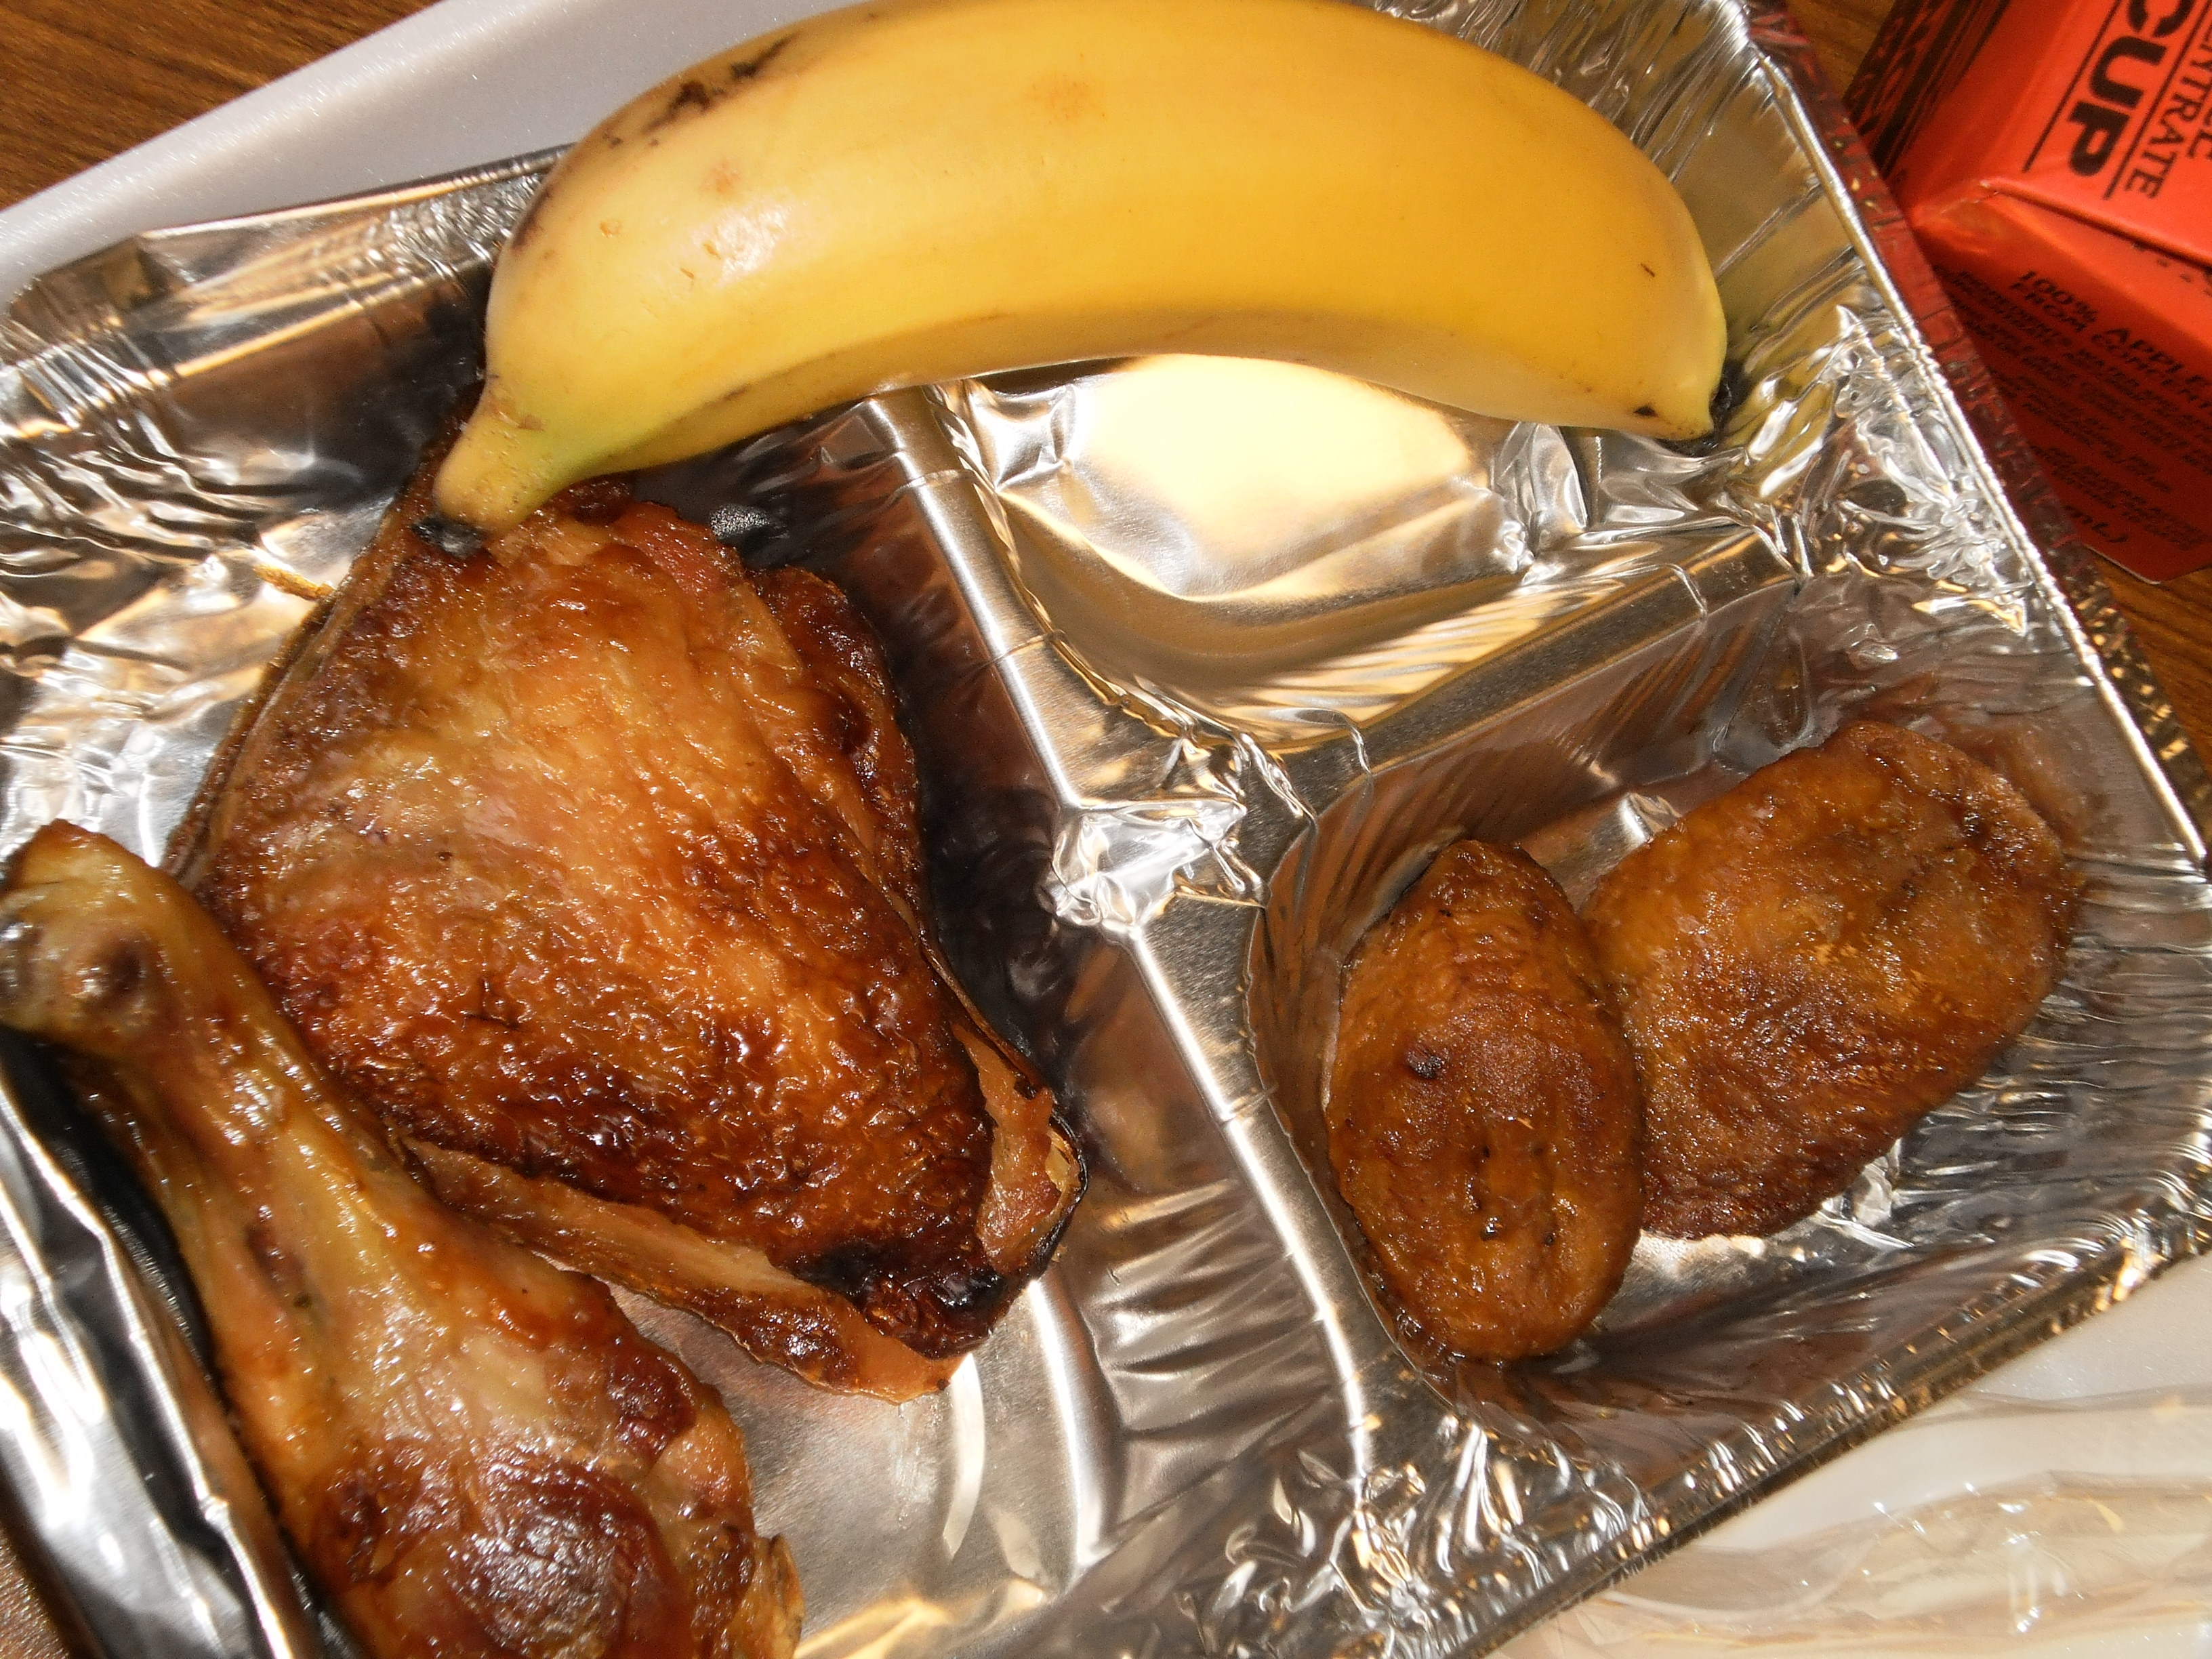 chicken and plantains bananas school lunch found guilty